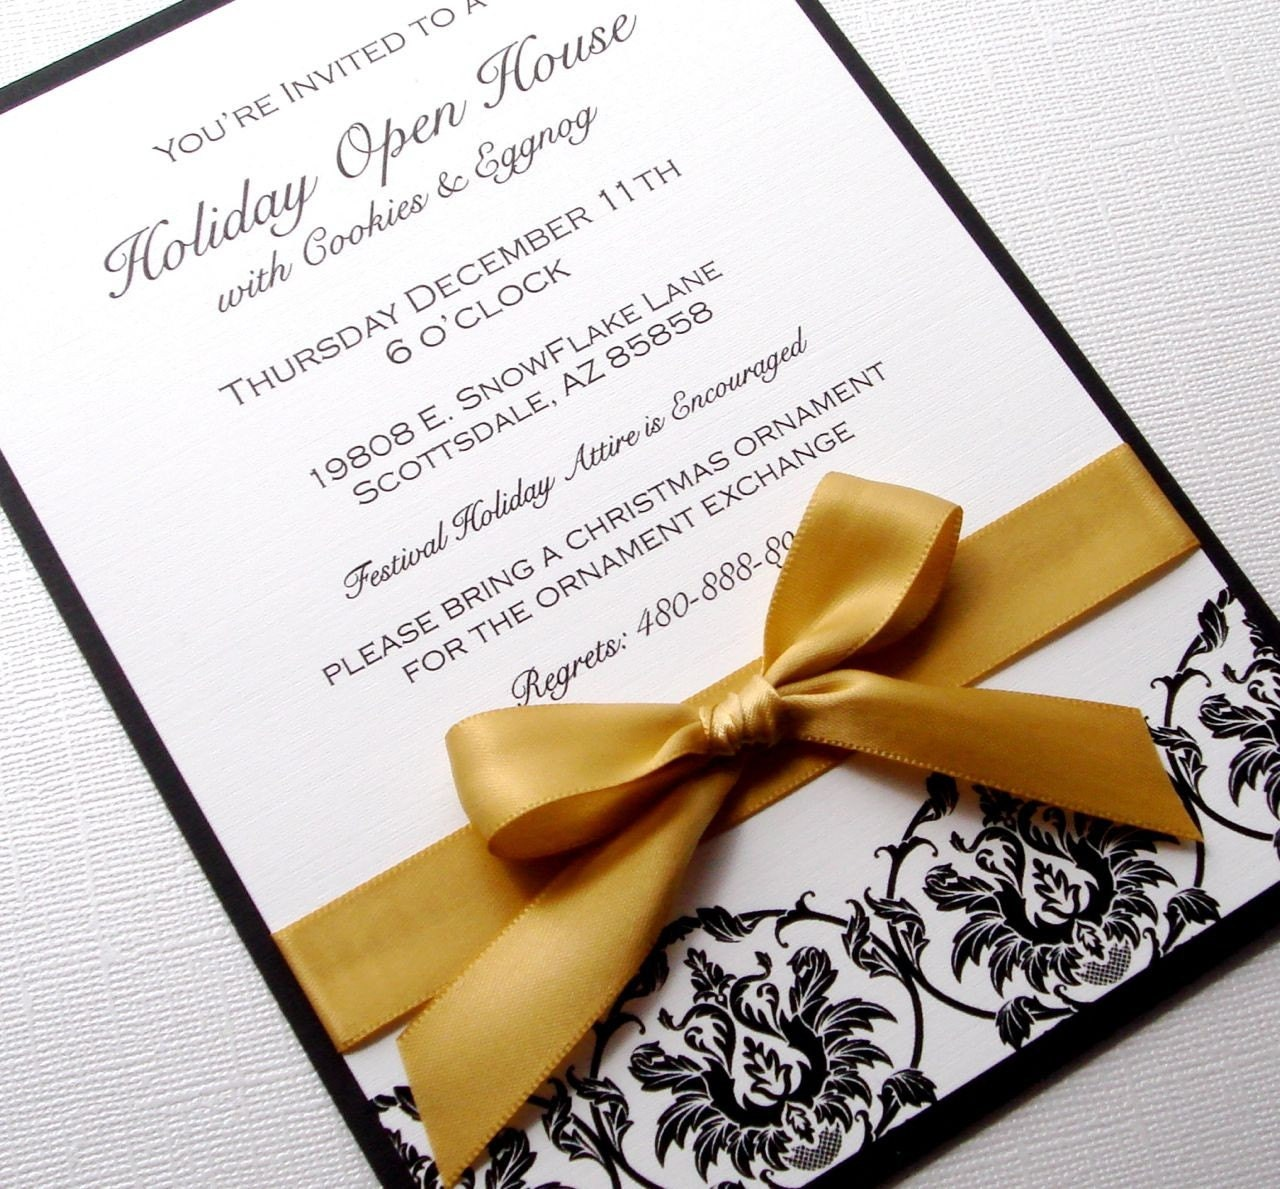 DAMASK HOLIDAY OPEN HOUSE INVITATIONS - 10 PACK